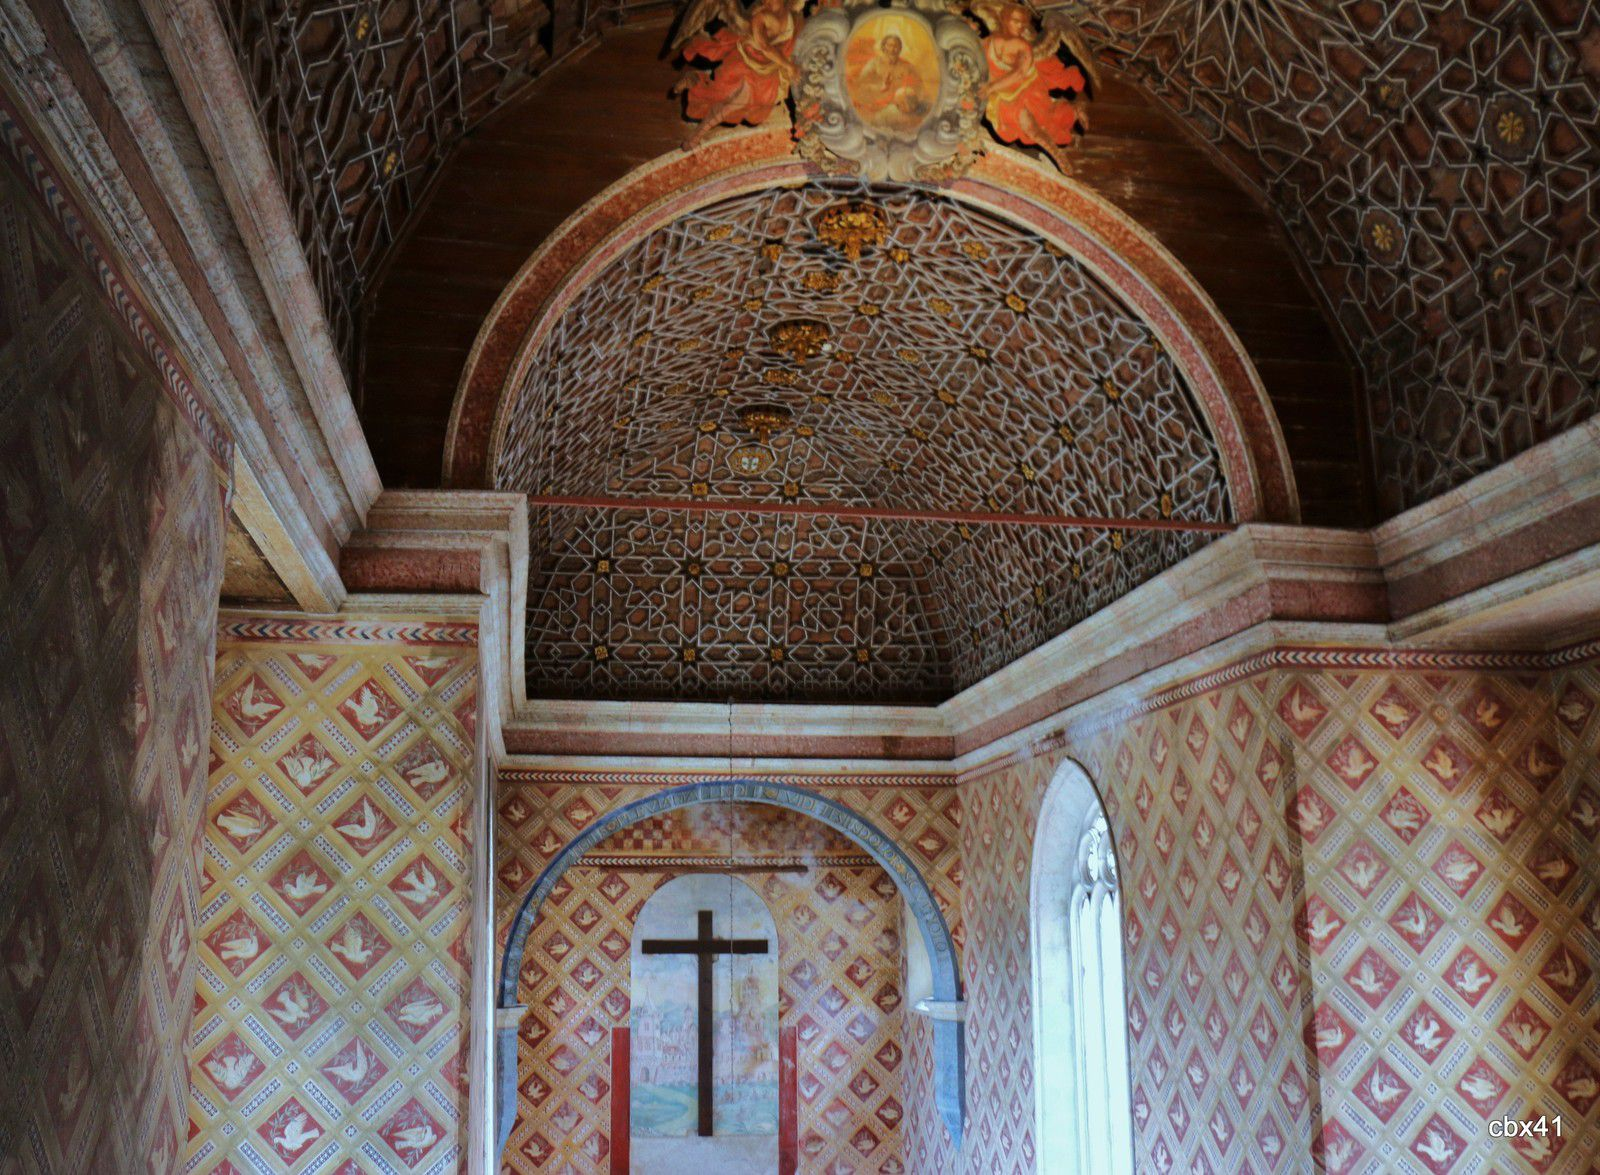 La chapelle du Palais National de Sintra (Portugal)